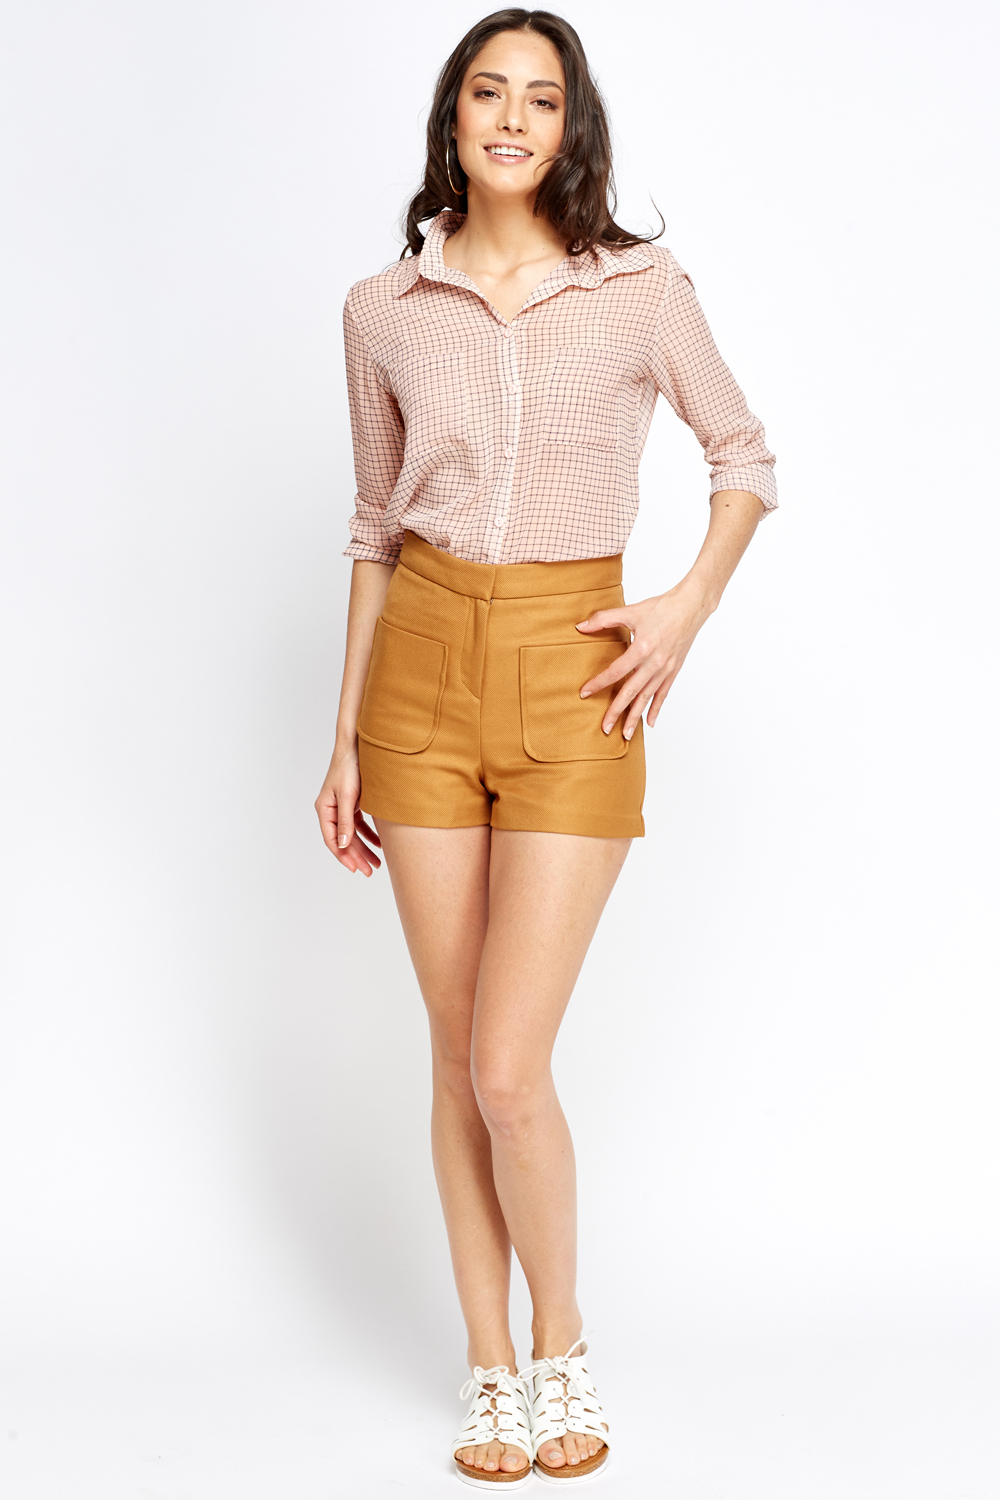 Brown High Waisted Shorts - Just £5